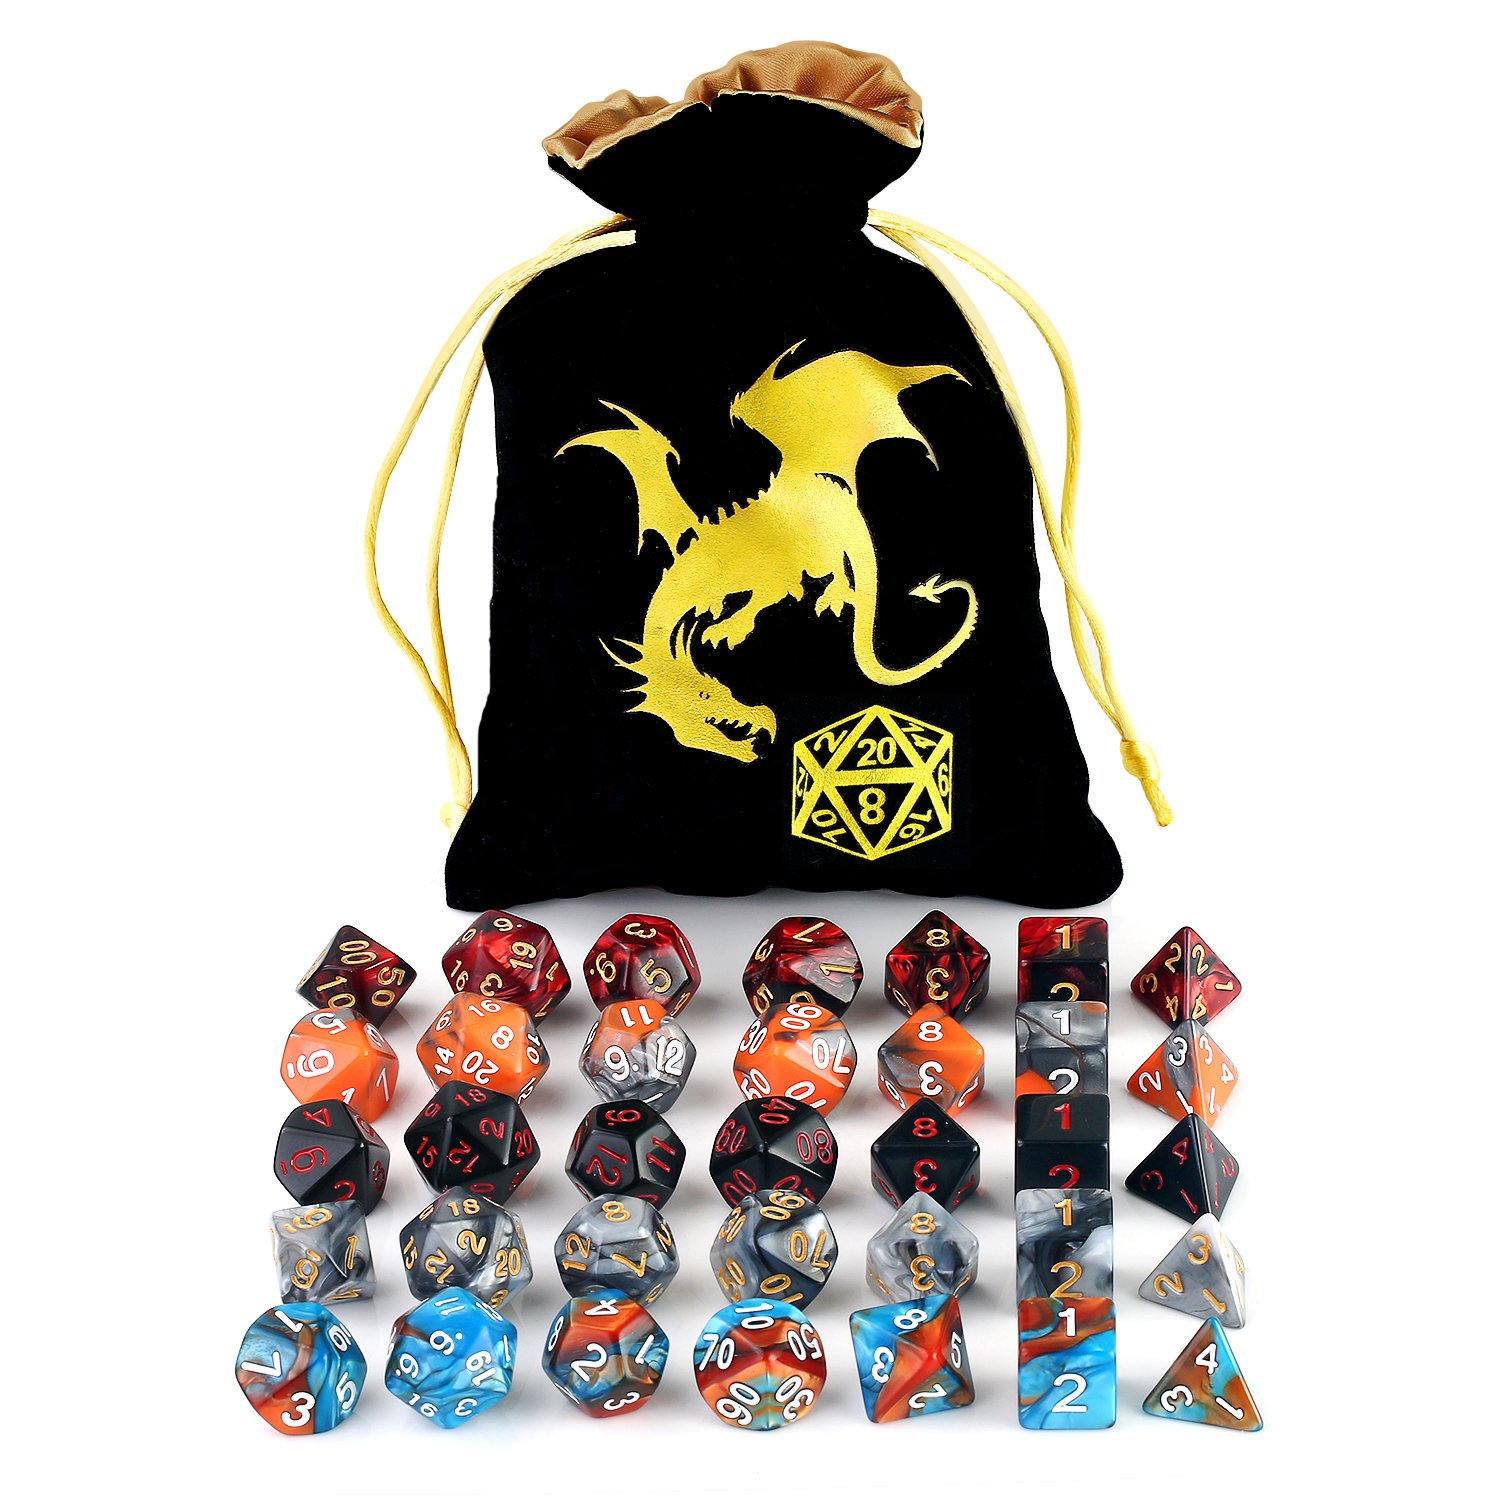 Polyhedral DnD Dice Set with Large Black Gold Drawstring Bag – 5 Complete RPG Dice Sets For Dungeons and Dragons D&D Role Playing Game MTG, of D4 D6 D8 D10 D00 D12 D20 Table Games